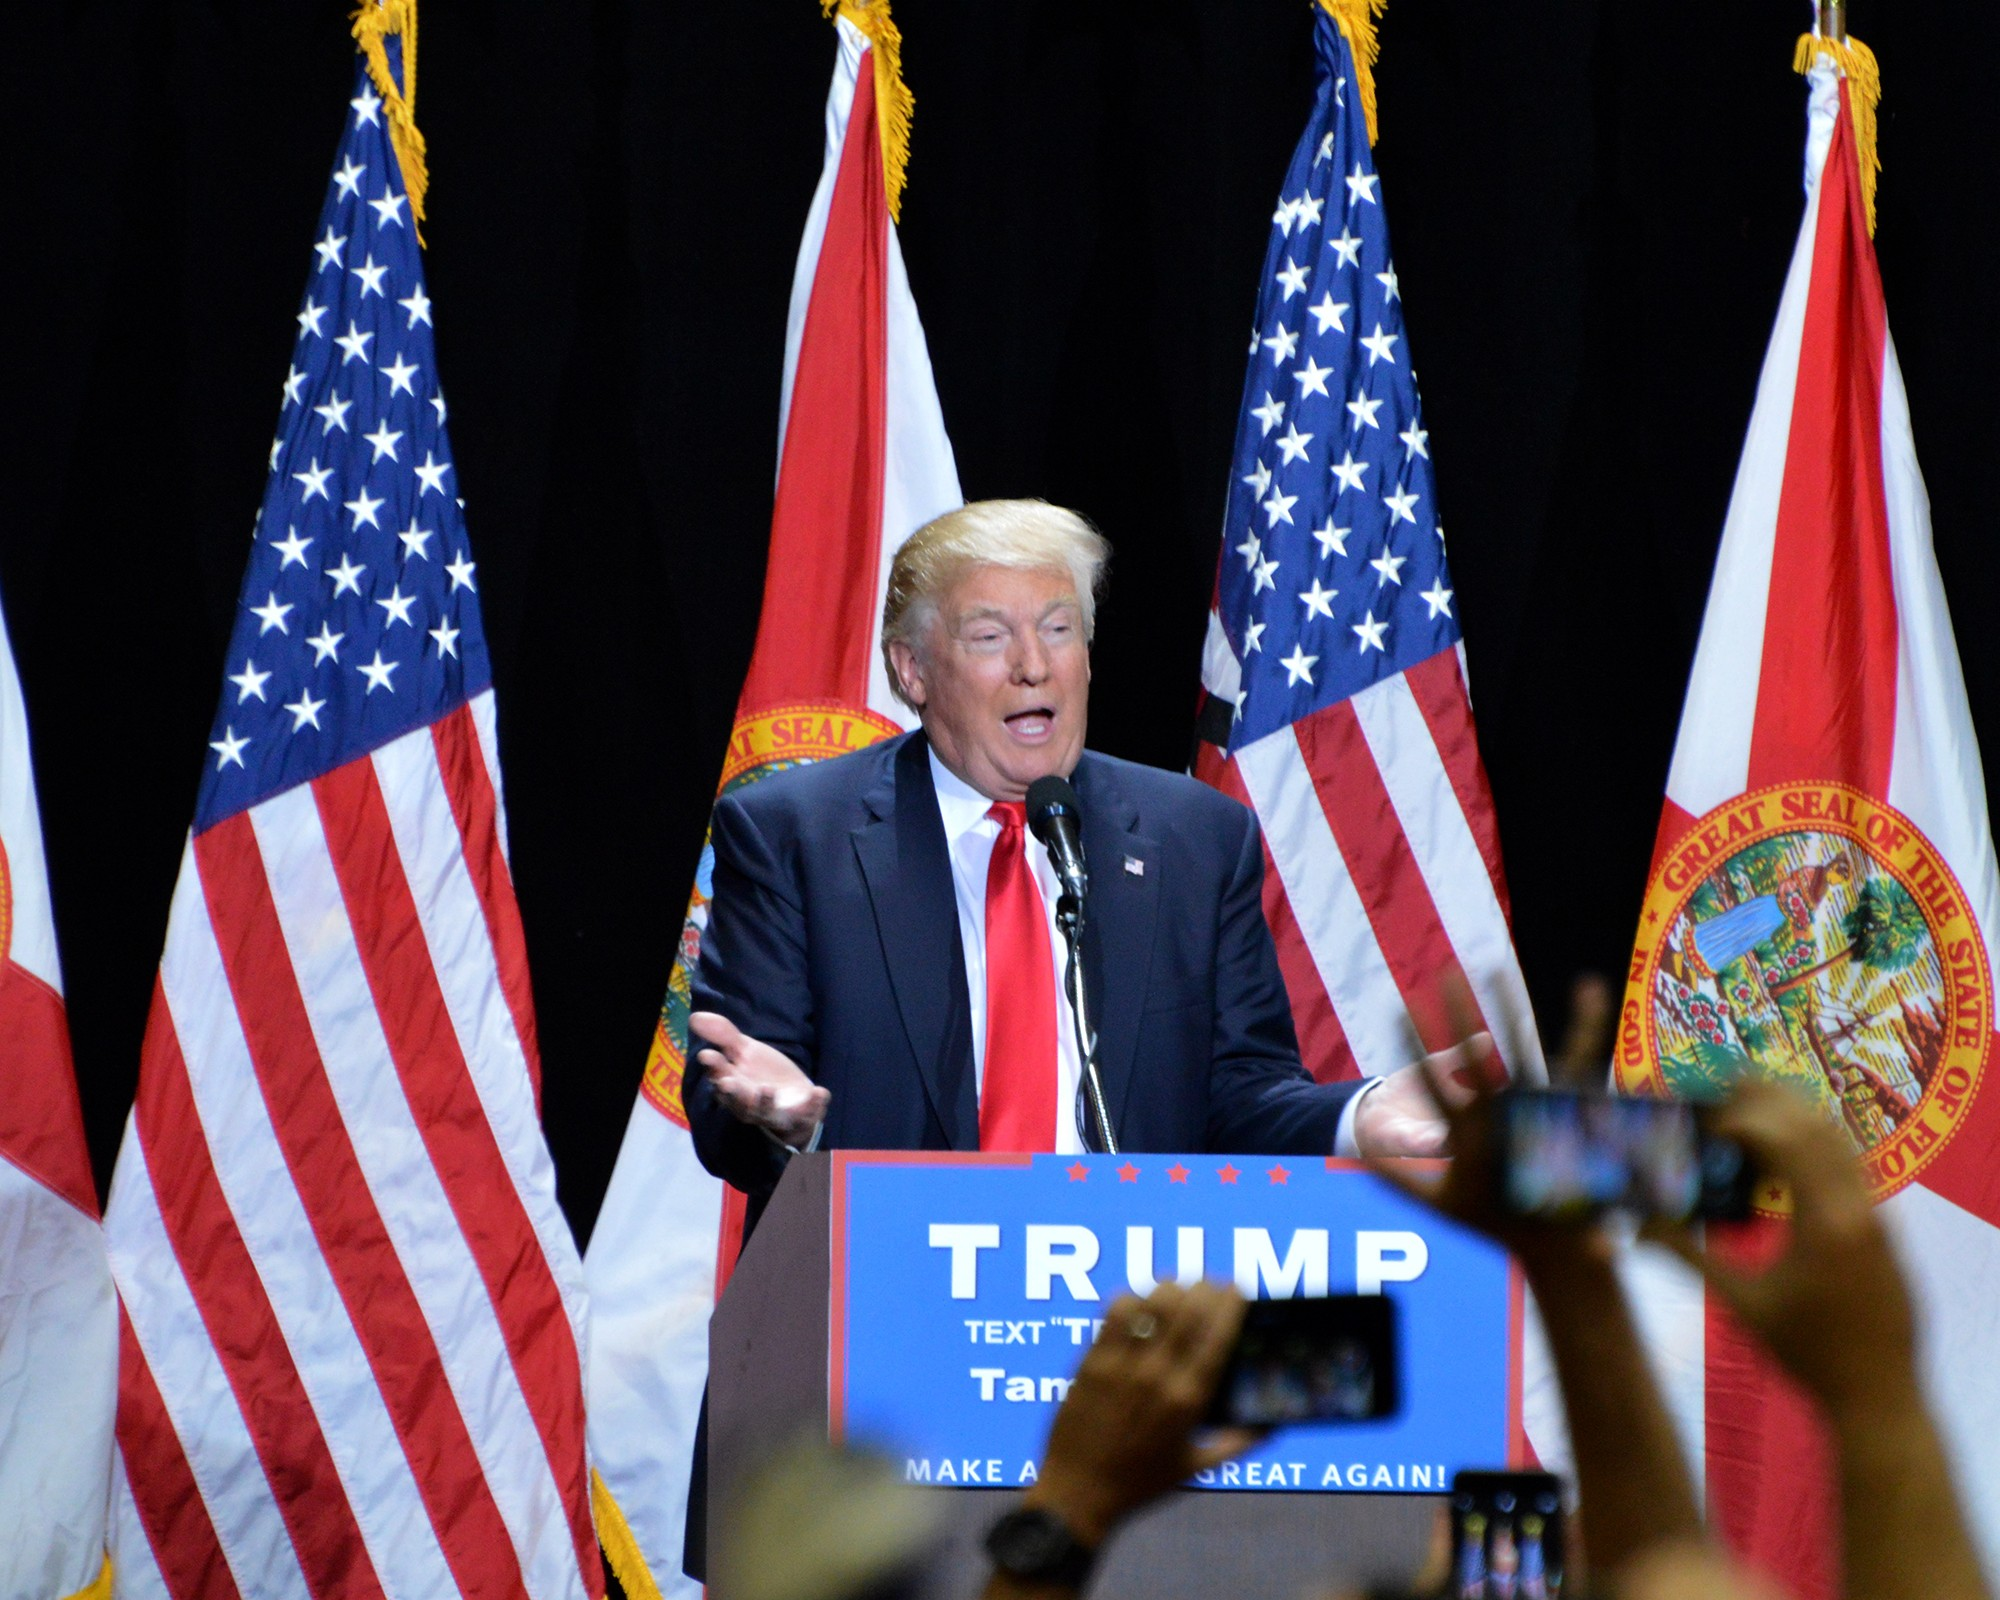 Donald Trump calls for GOP unity at Tampa rally while ...